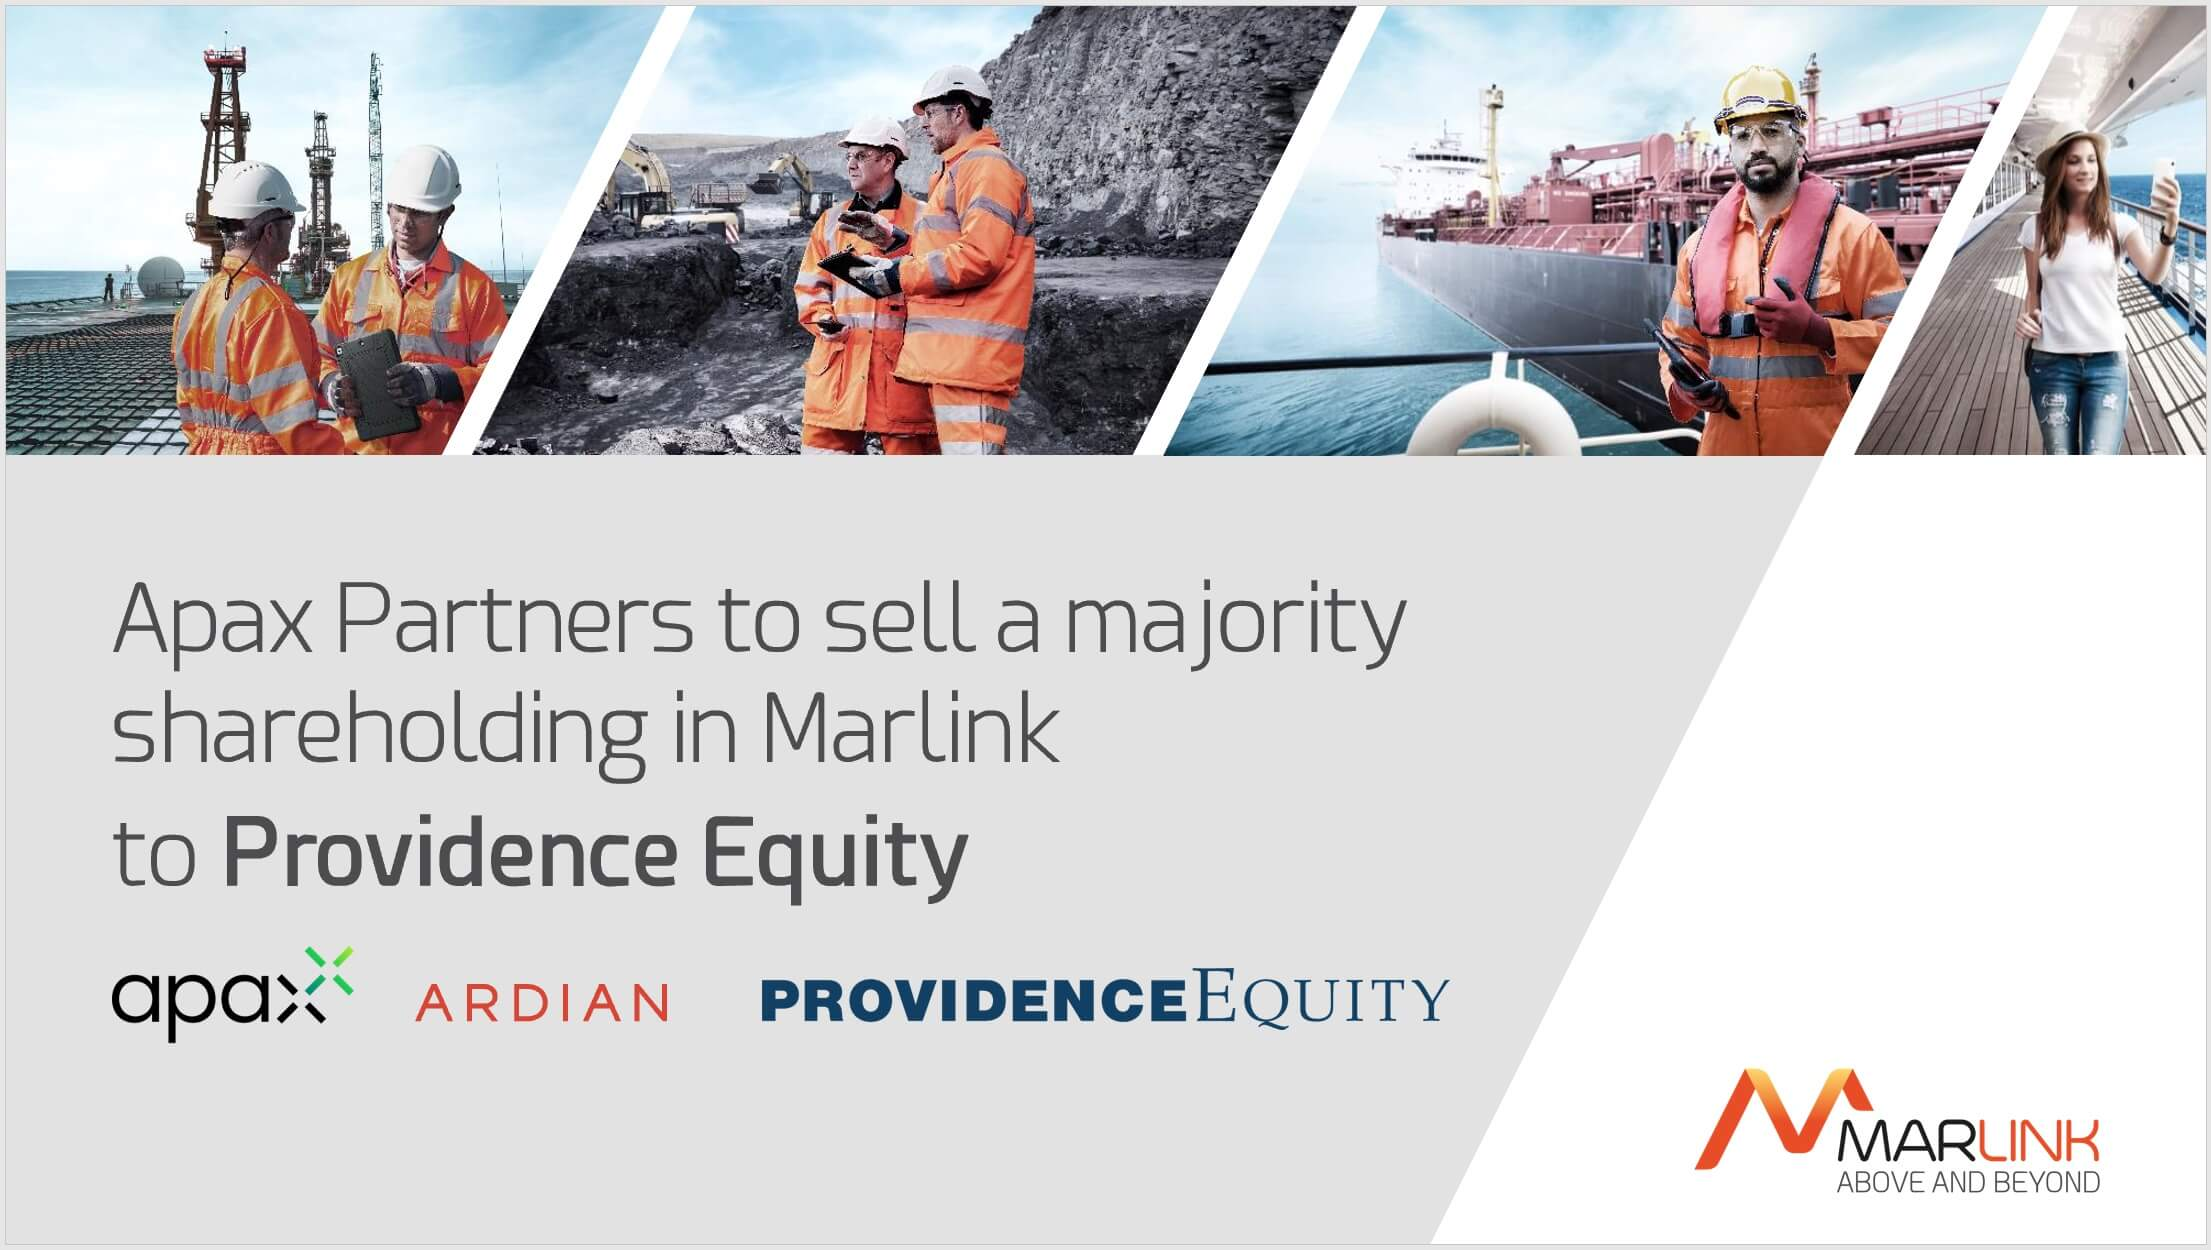 Apax Partners to sell a Majority Shareholding in Marlink to Providence